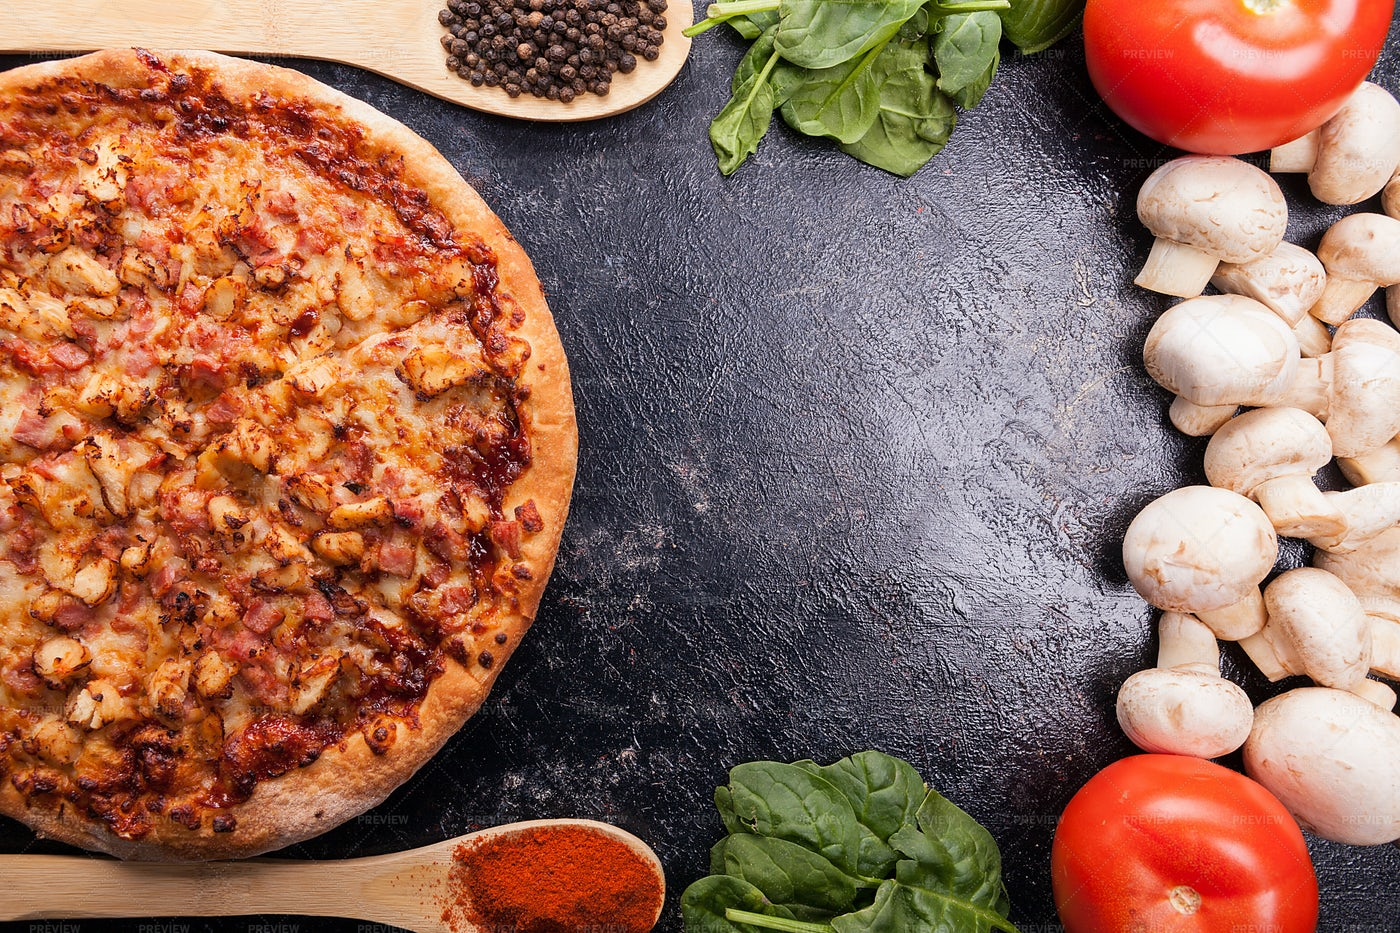 Baked Pizza Beside Vegetables: Stock Photos